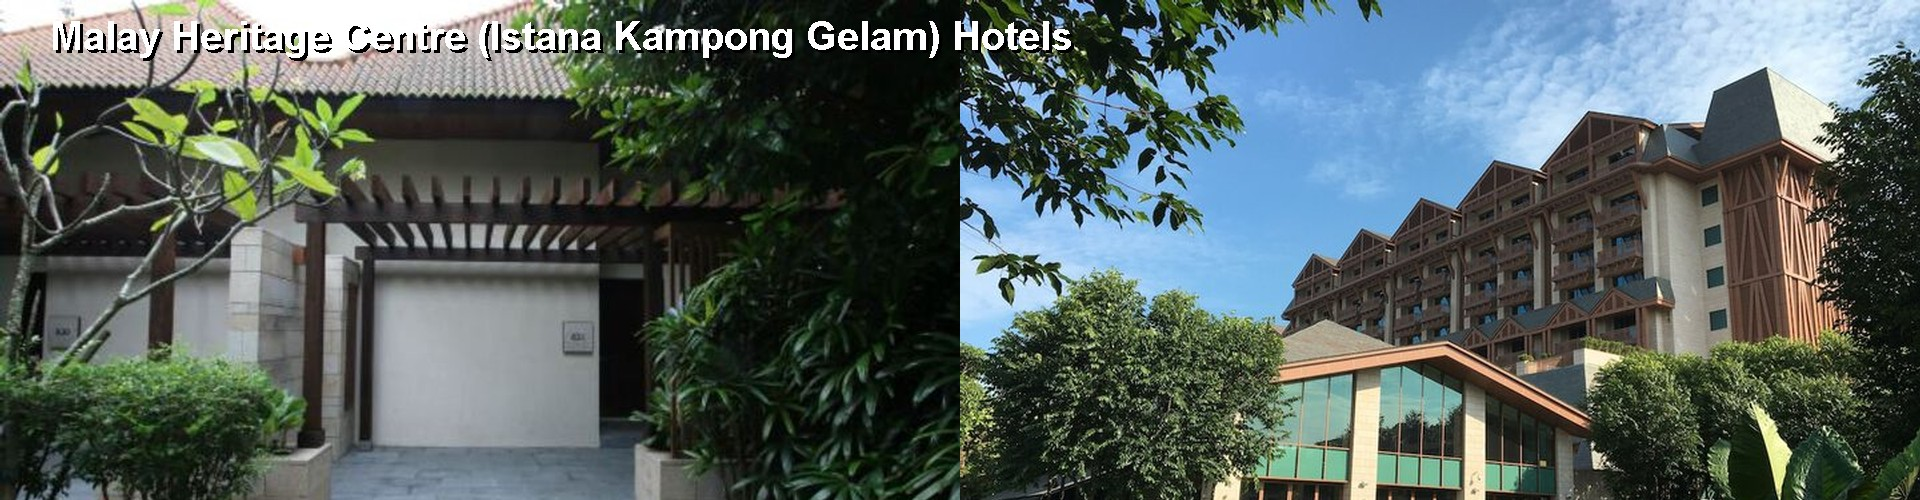 5 Best Hotels near Malay Heritage Centre (Istana Kampong Gelam)